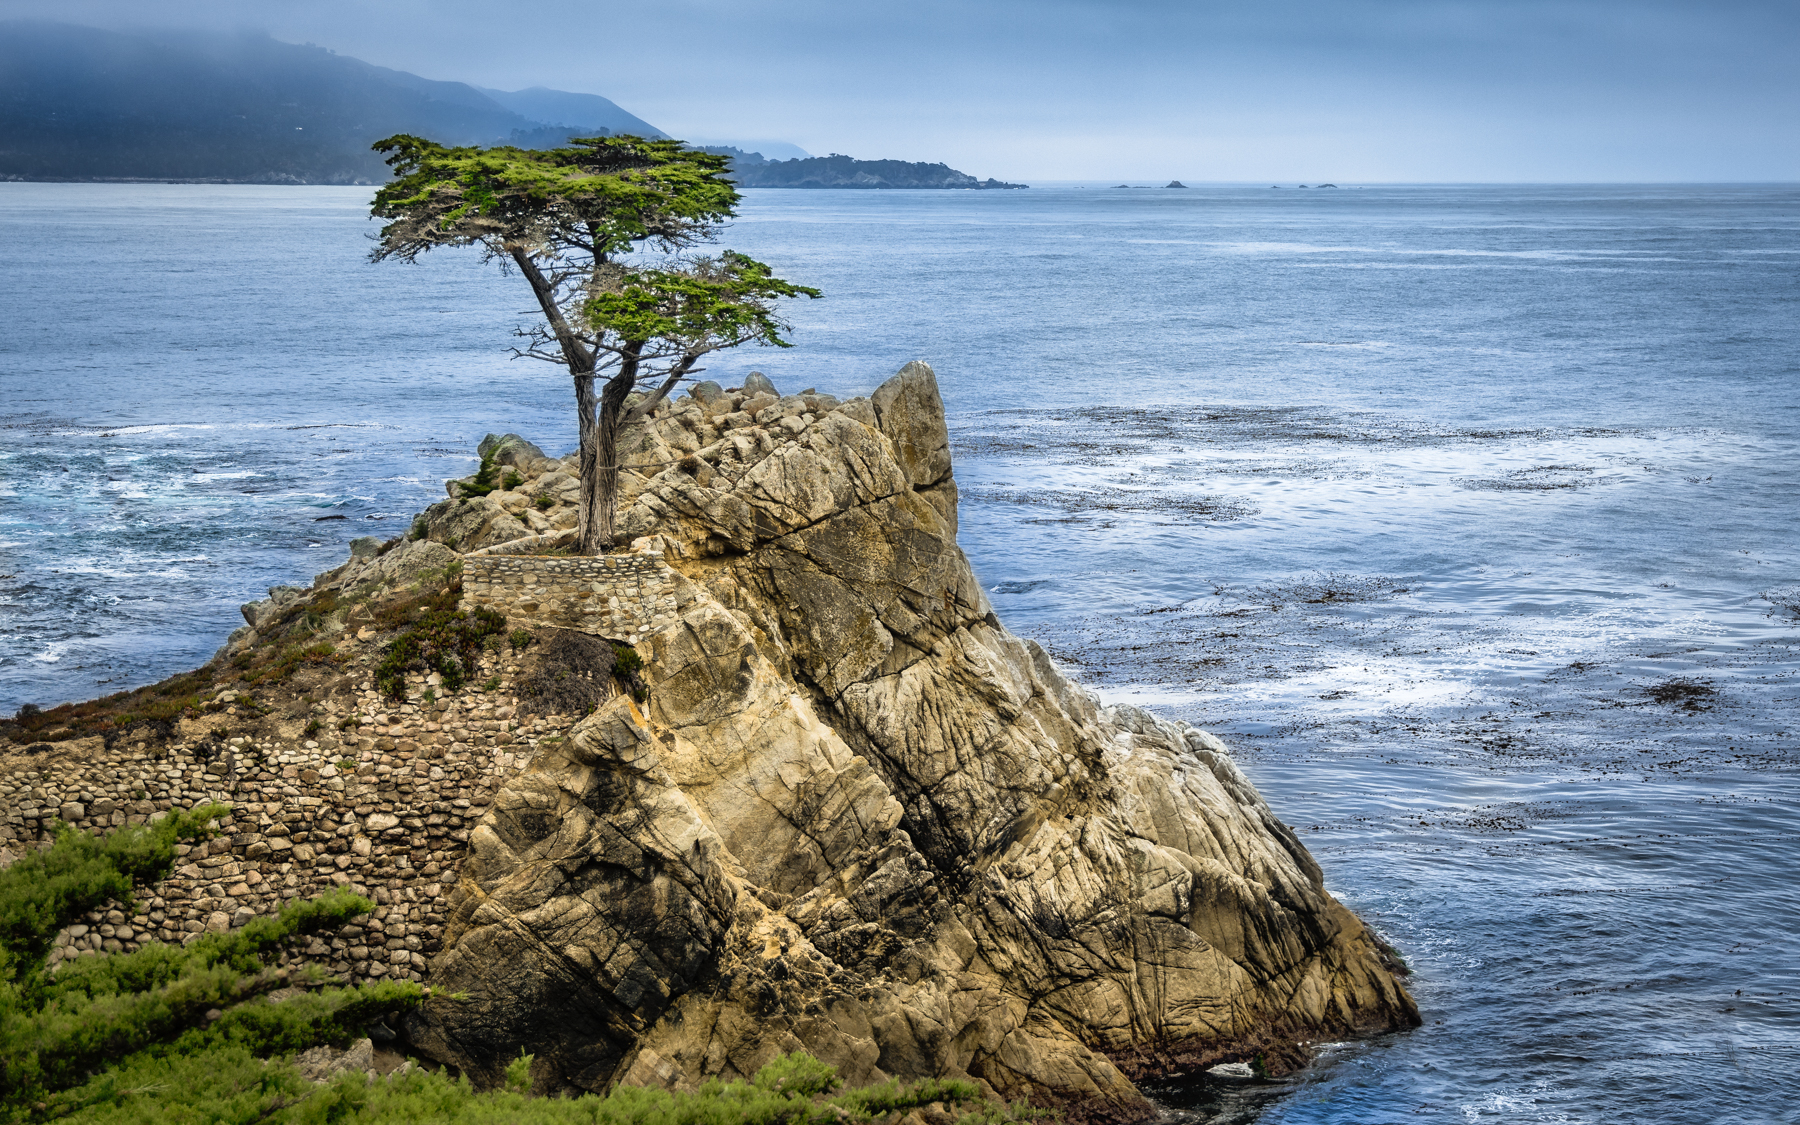 The lone cypress...